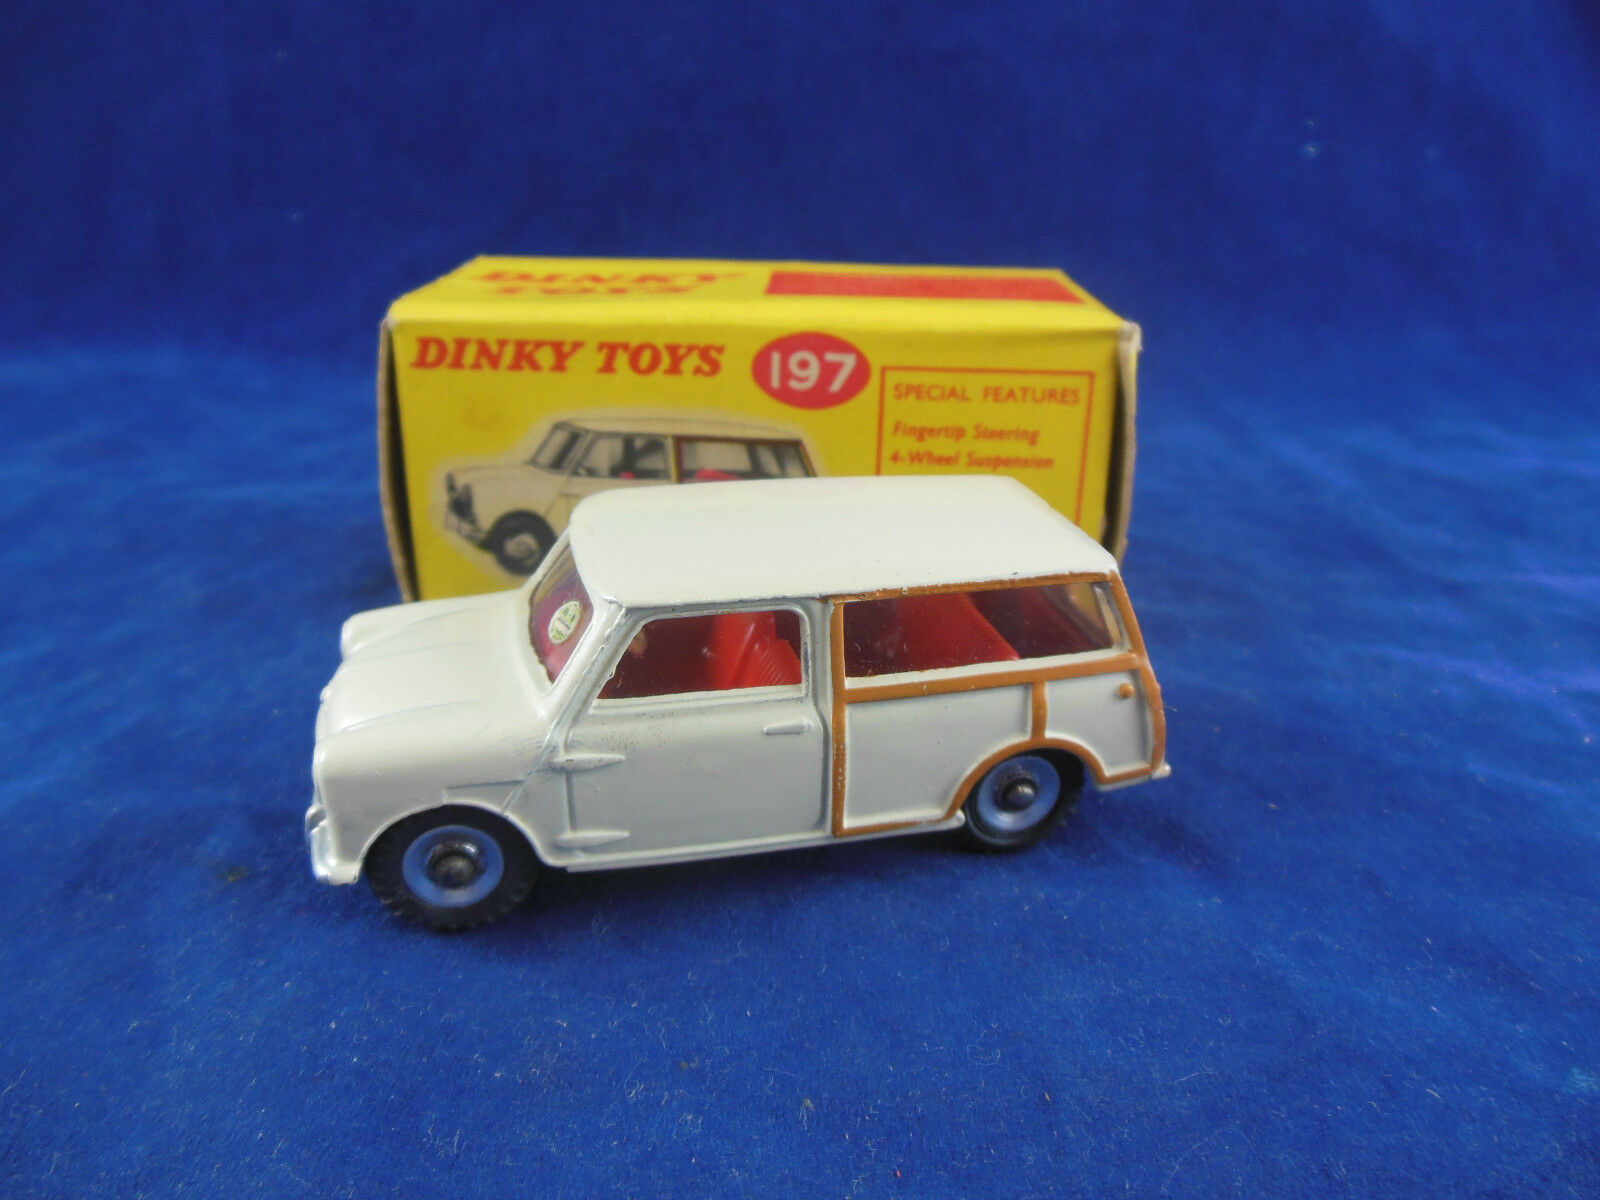 Dinky toys 197 Morris Mini Traveller in Cream Superb Original & Boxed